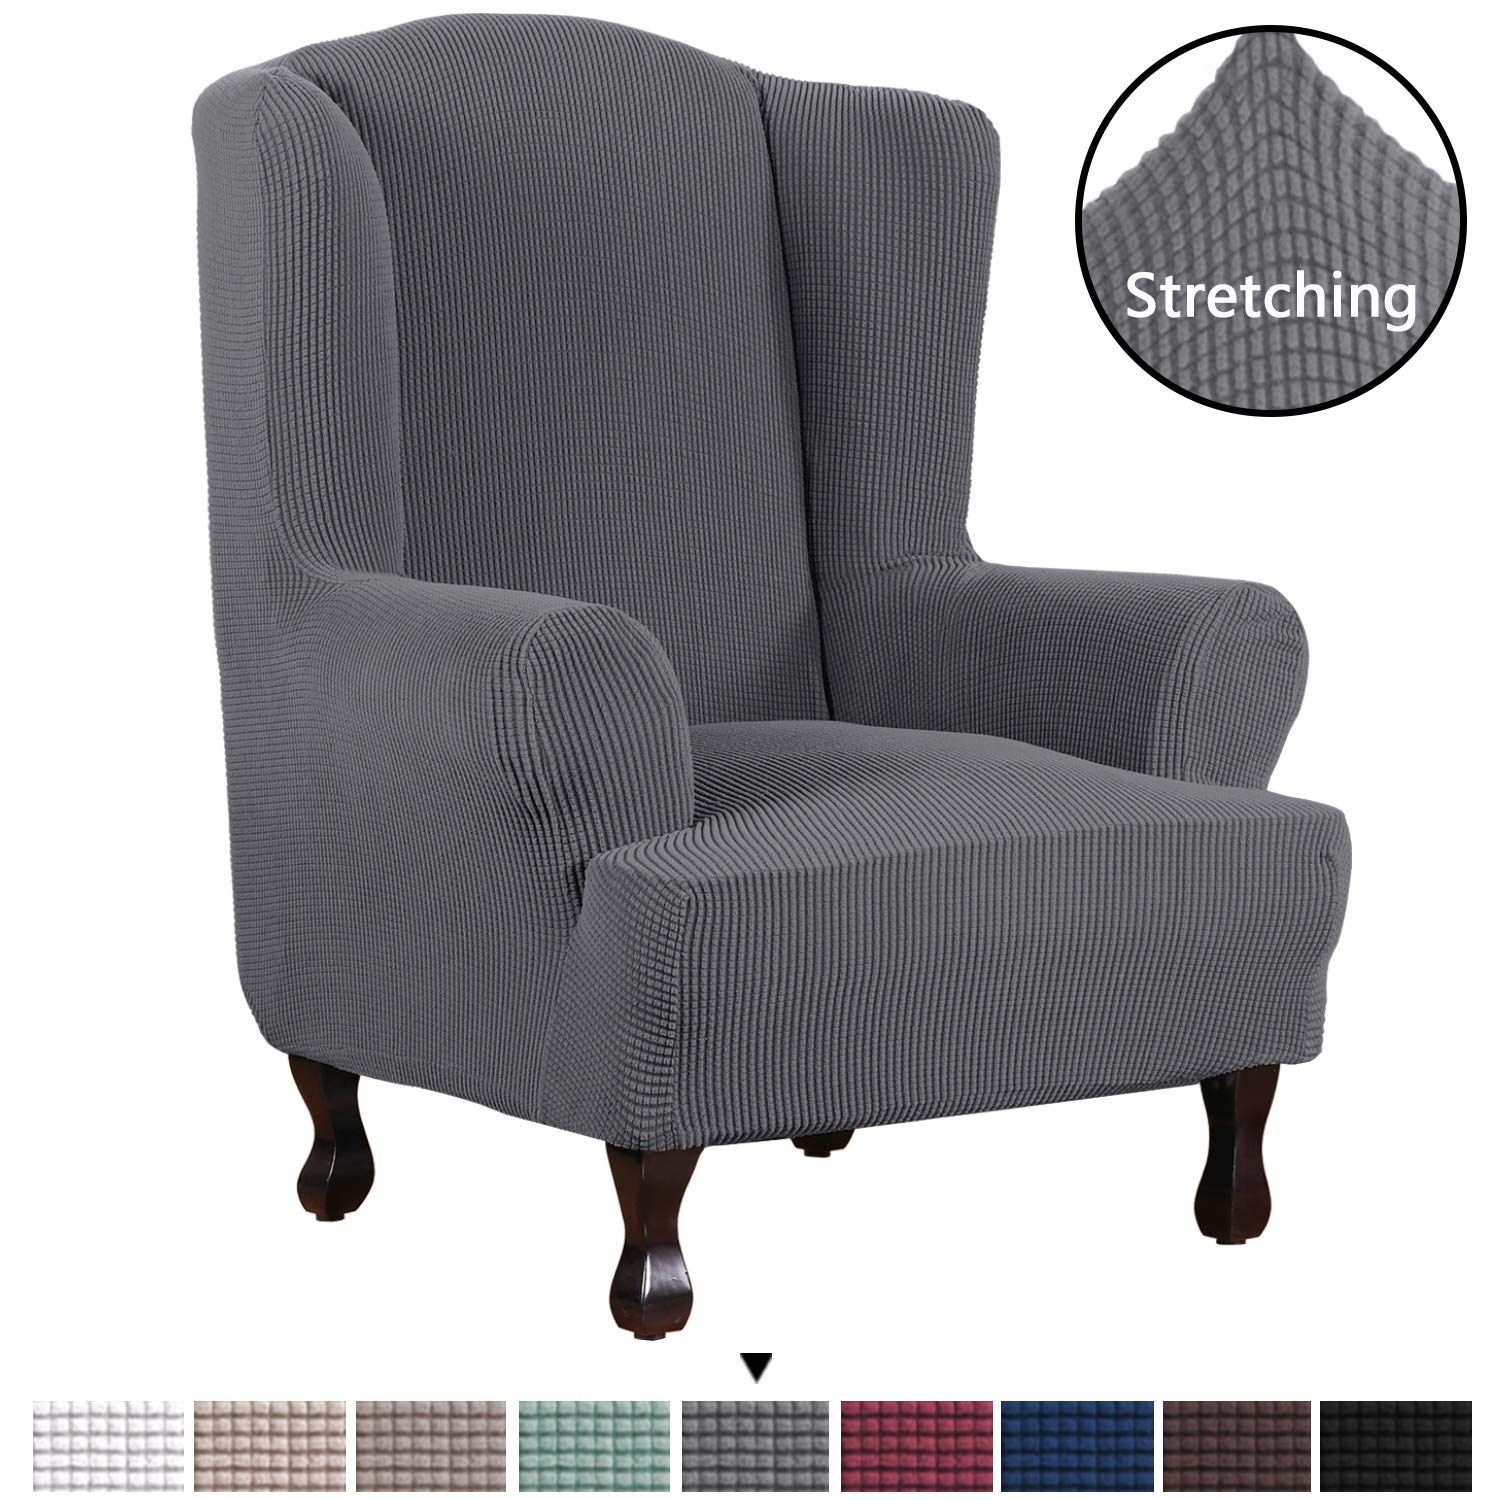 Top 10 Best Slipcovers For Wingback Chairs Reviews in 2020